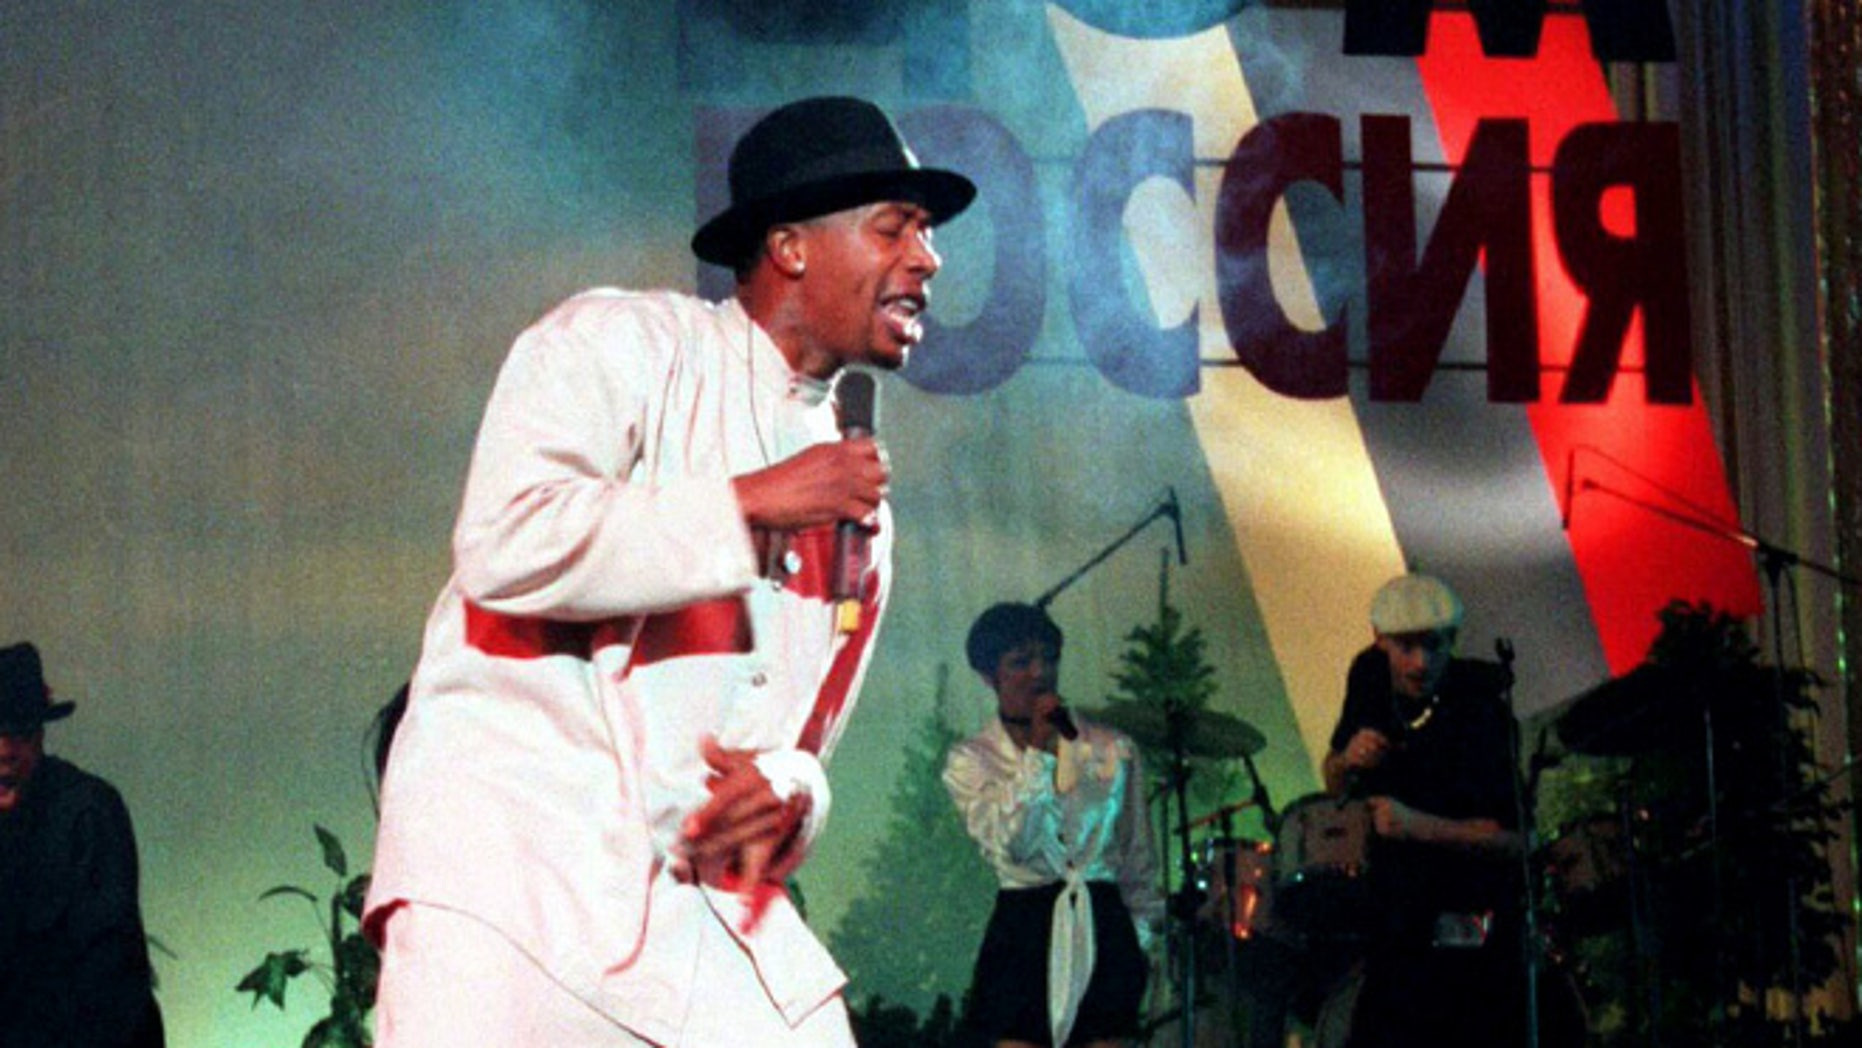 Carter said he used to be a backup dancer for MC Hammer, seen here in 1995.